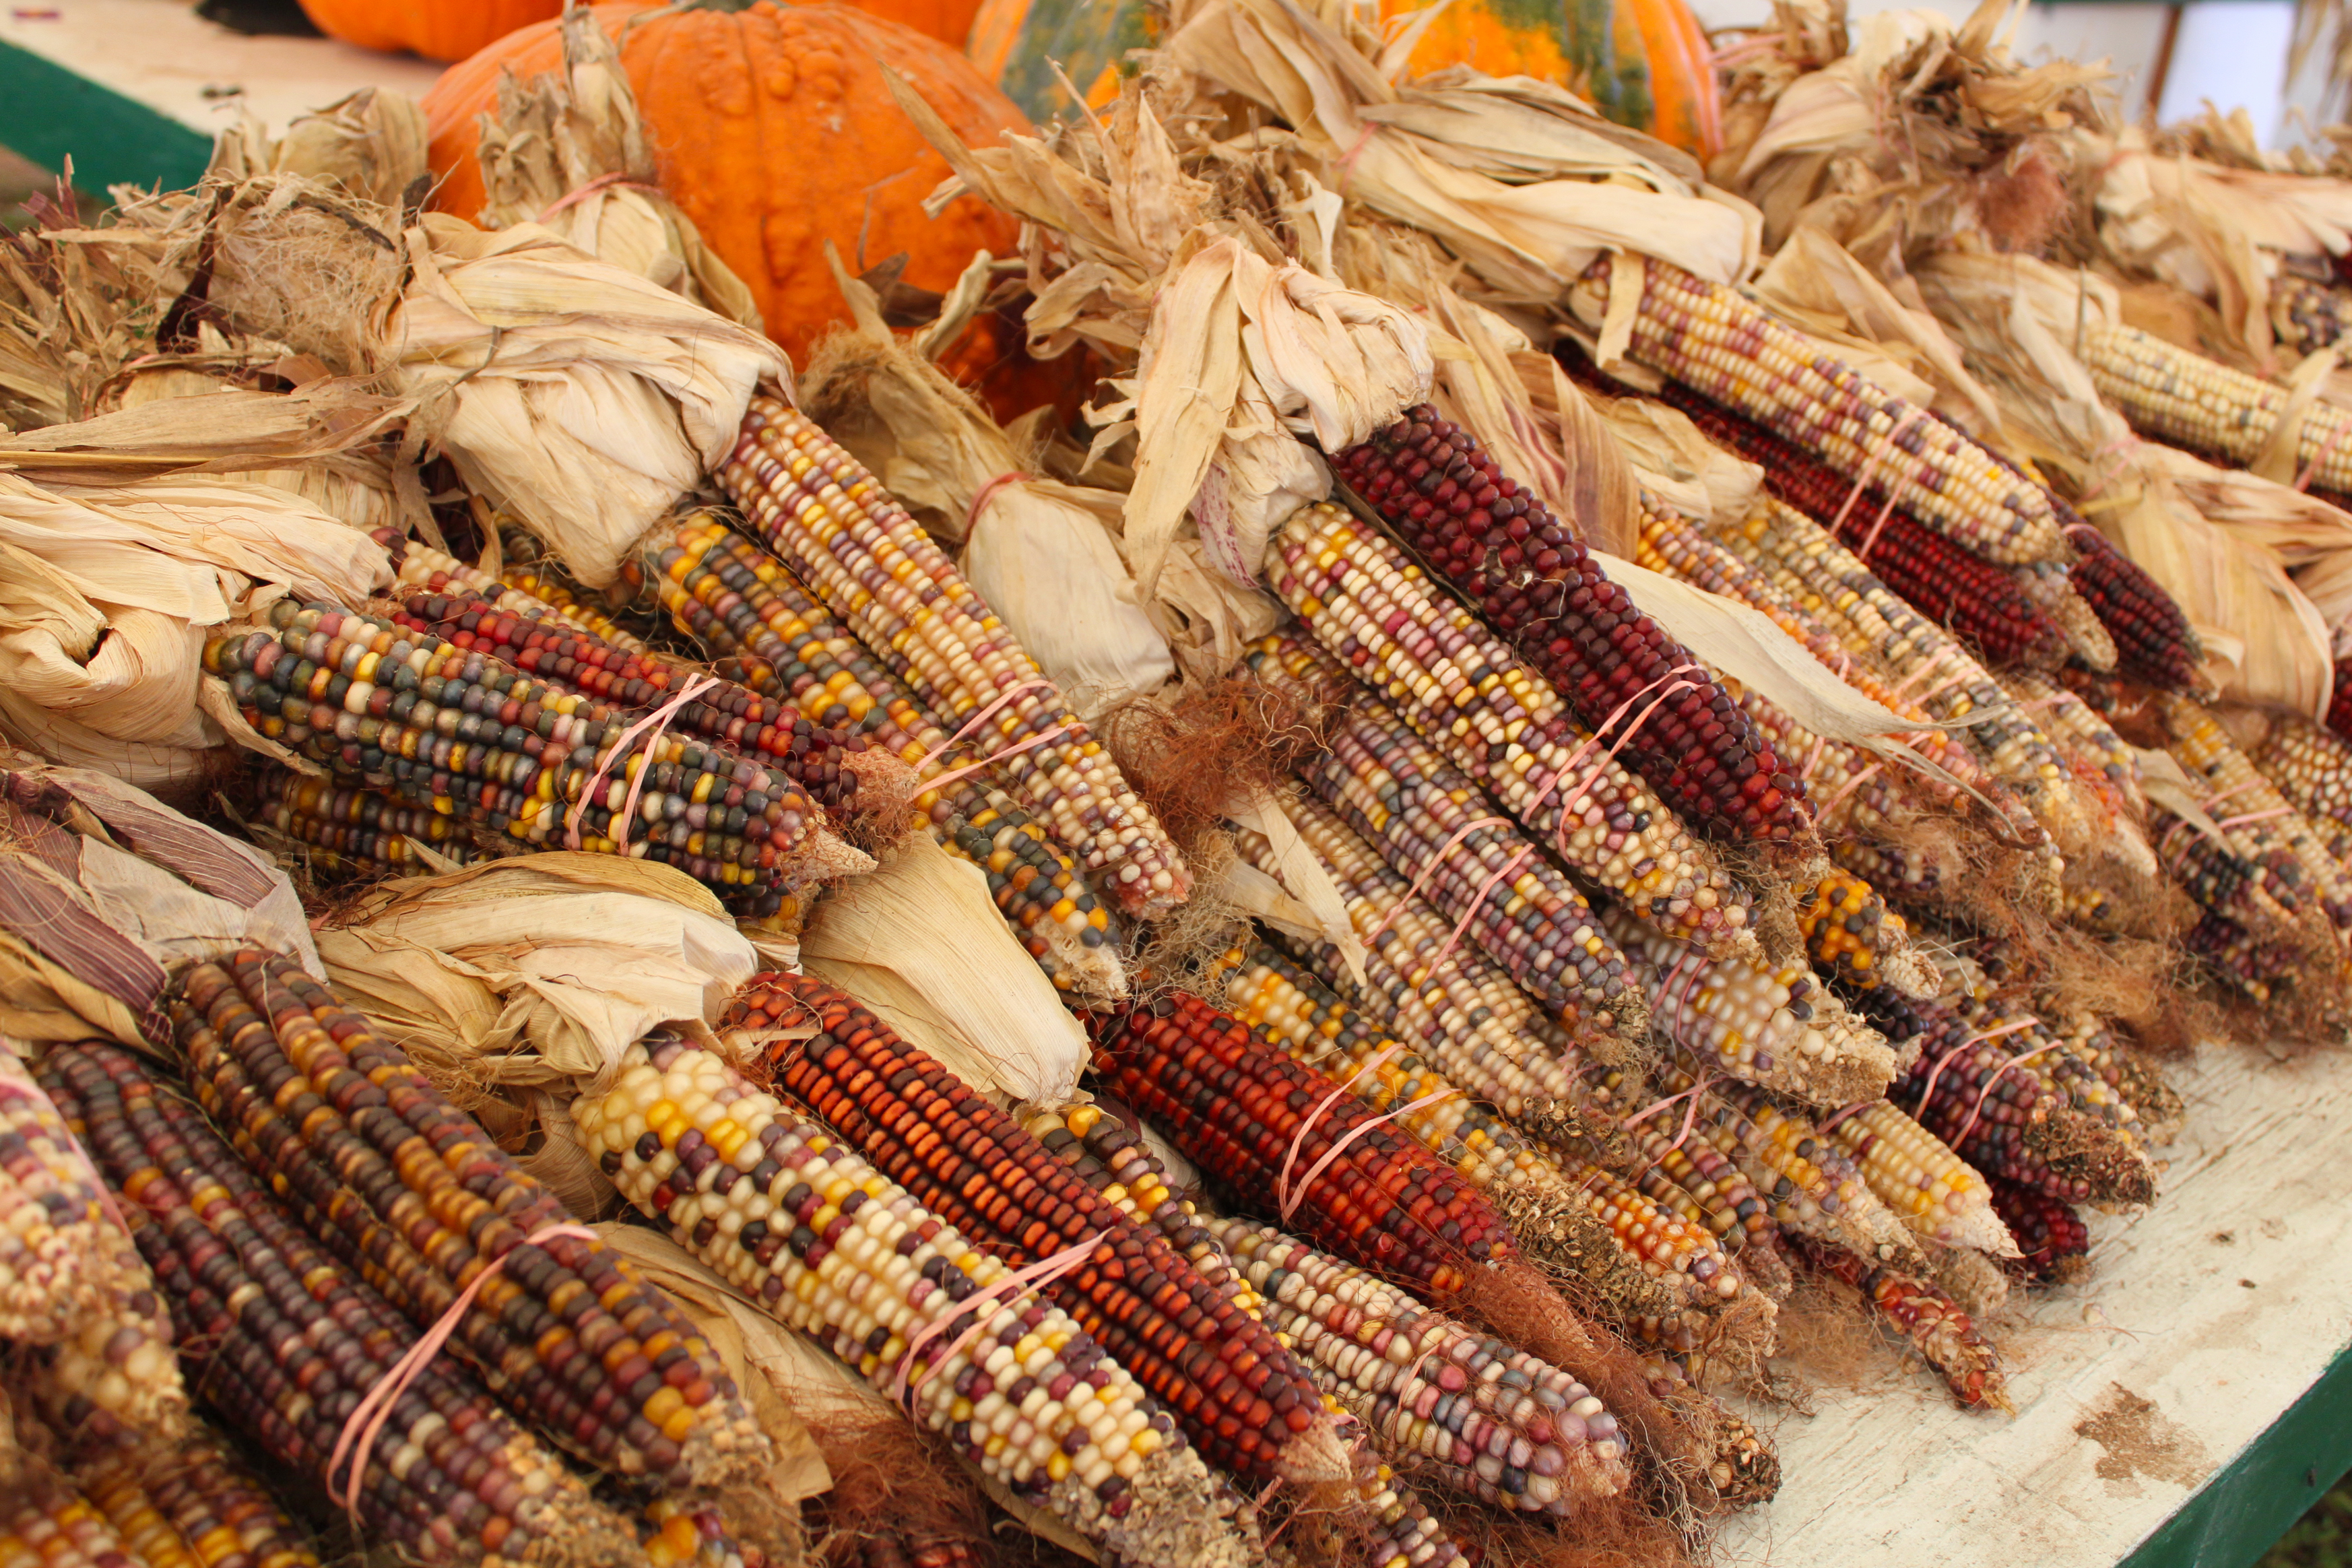 Indian corn, Agriculture, Organic, Maize, Market, HQ Photo